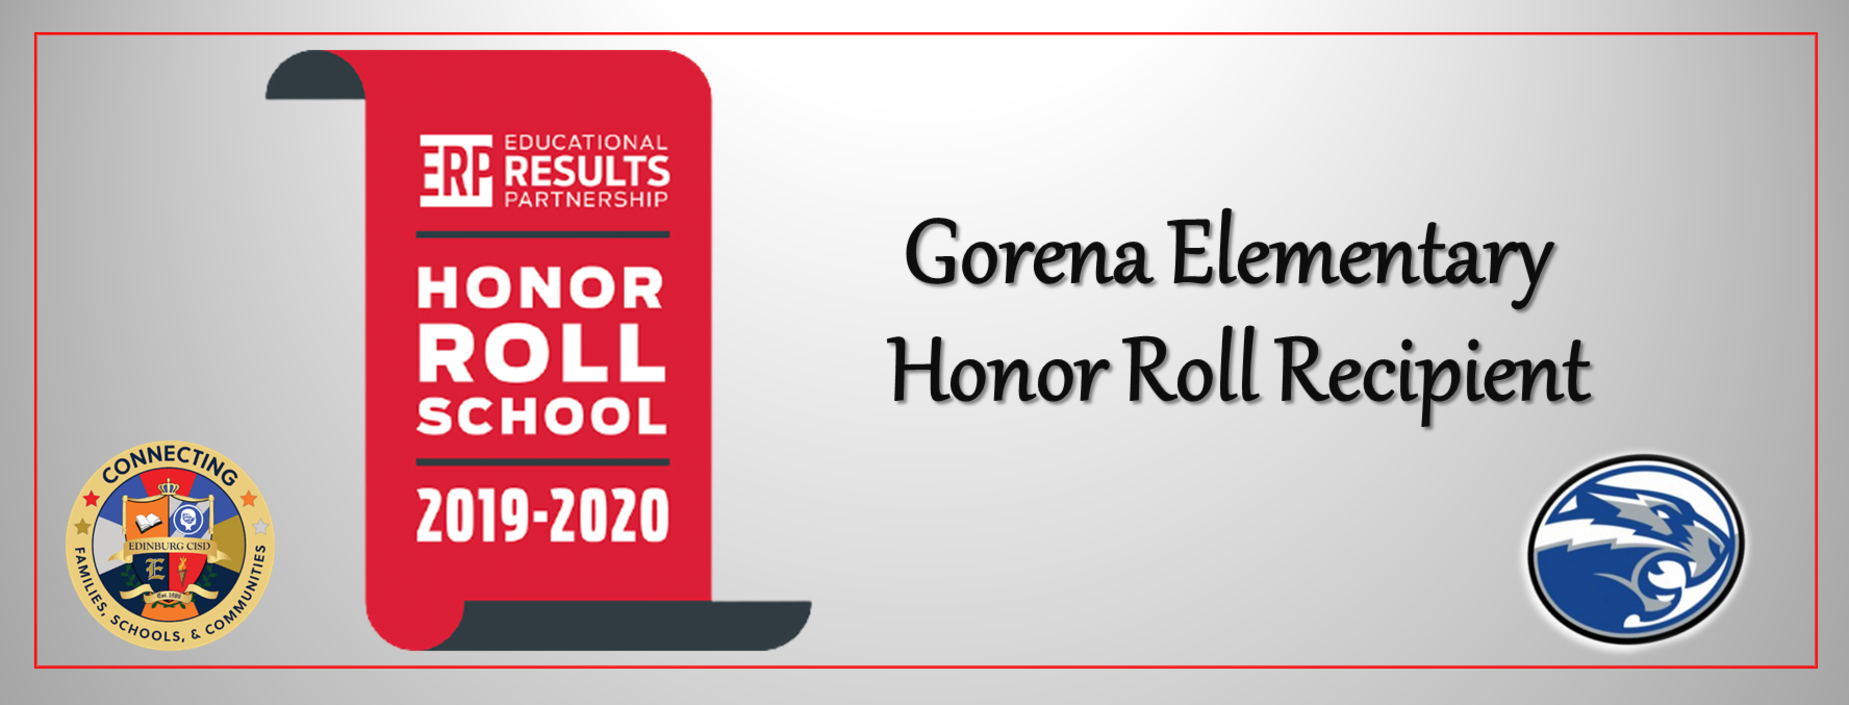 picture of honor roll recipient